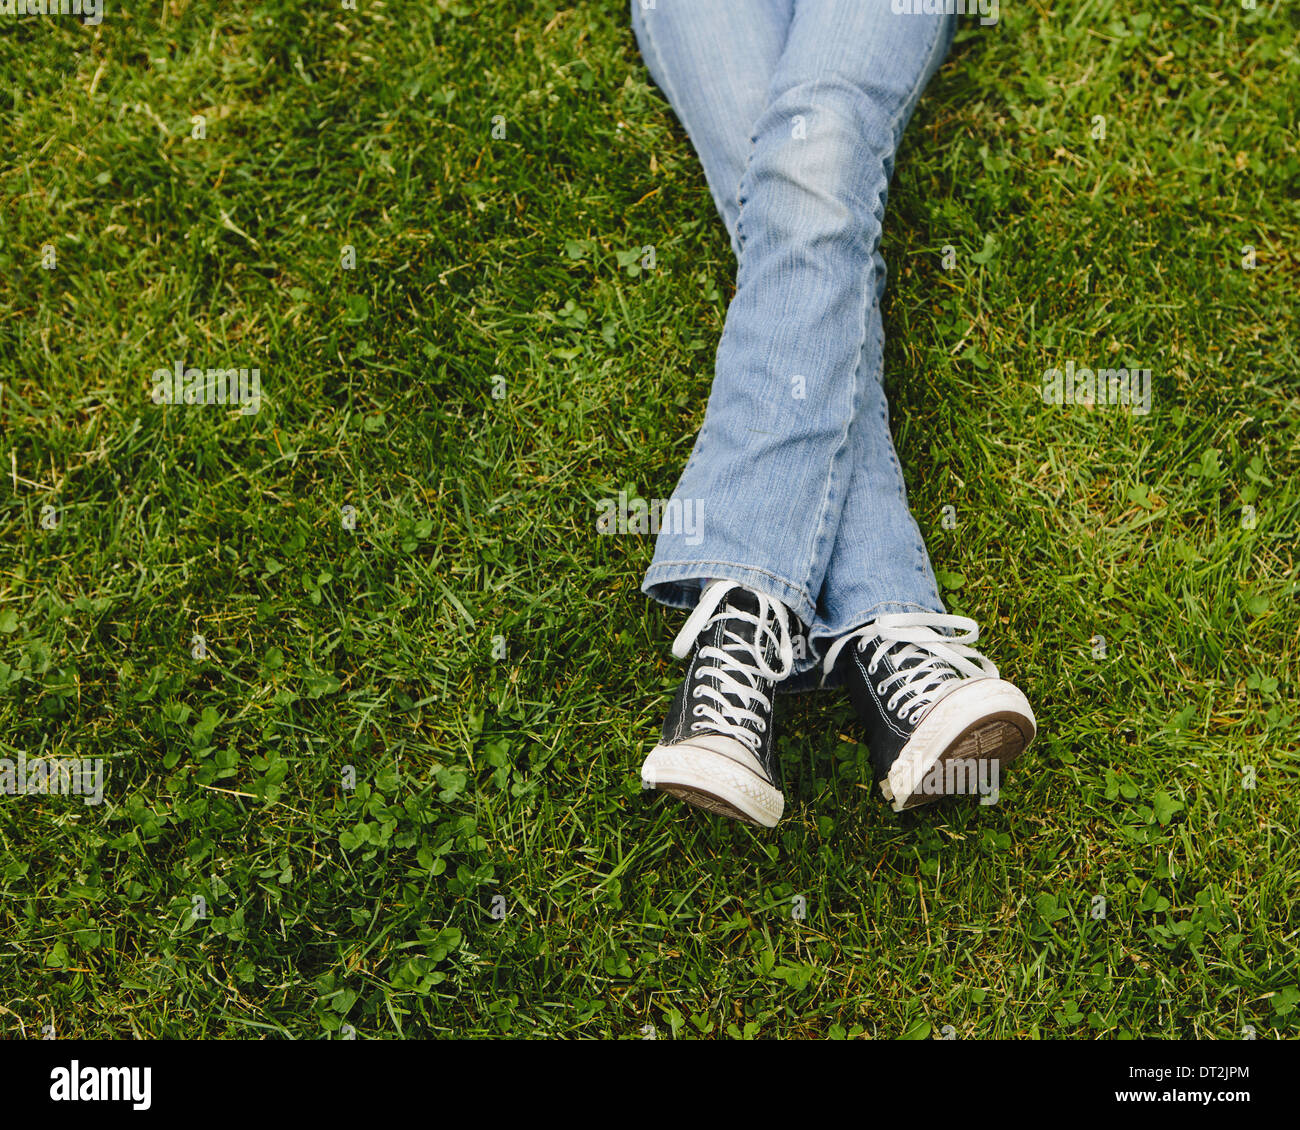 21b1e189a33 Ten year old girl lying on the grass Legs crossed at the ankles - Stock  Image